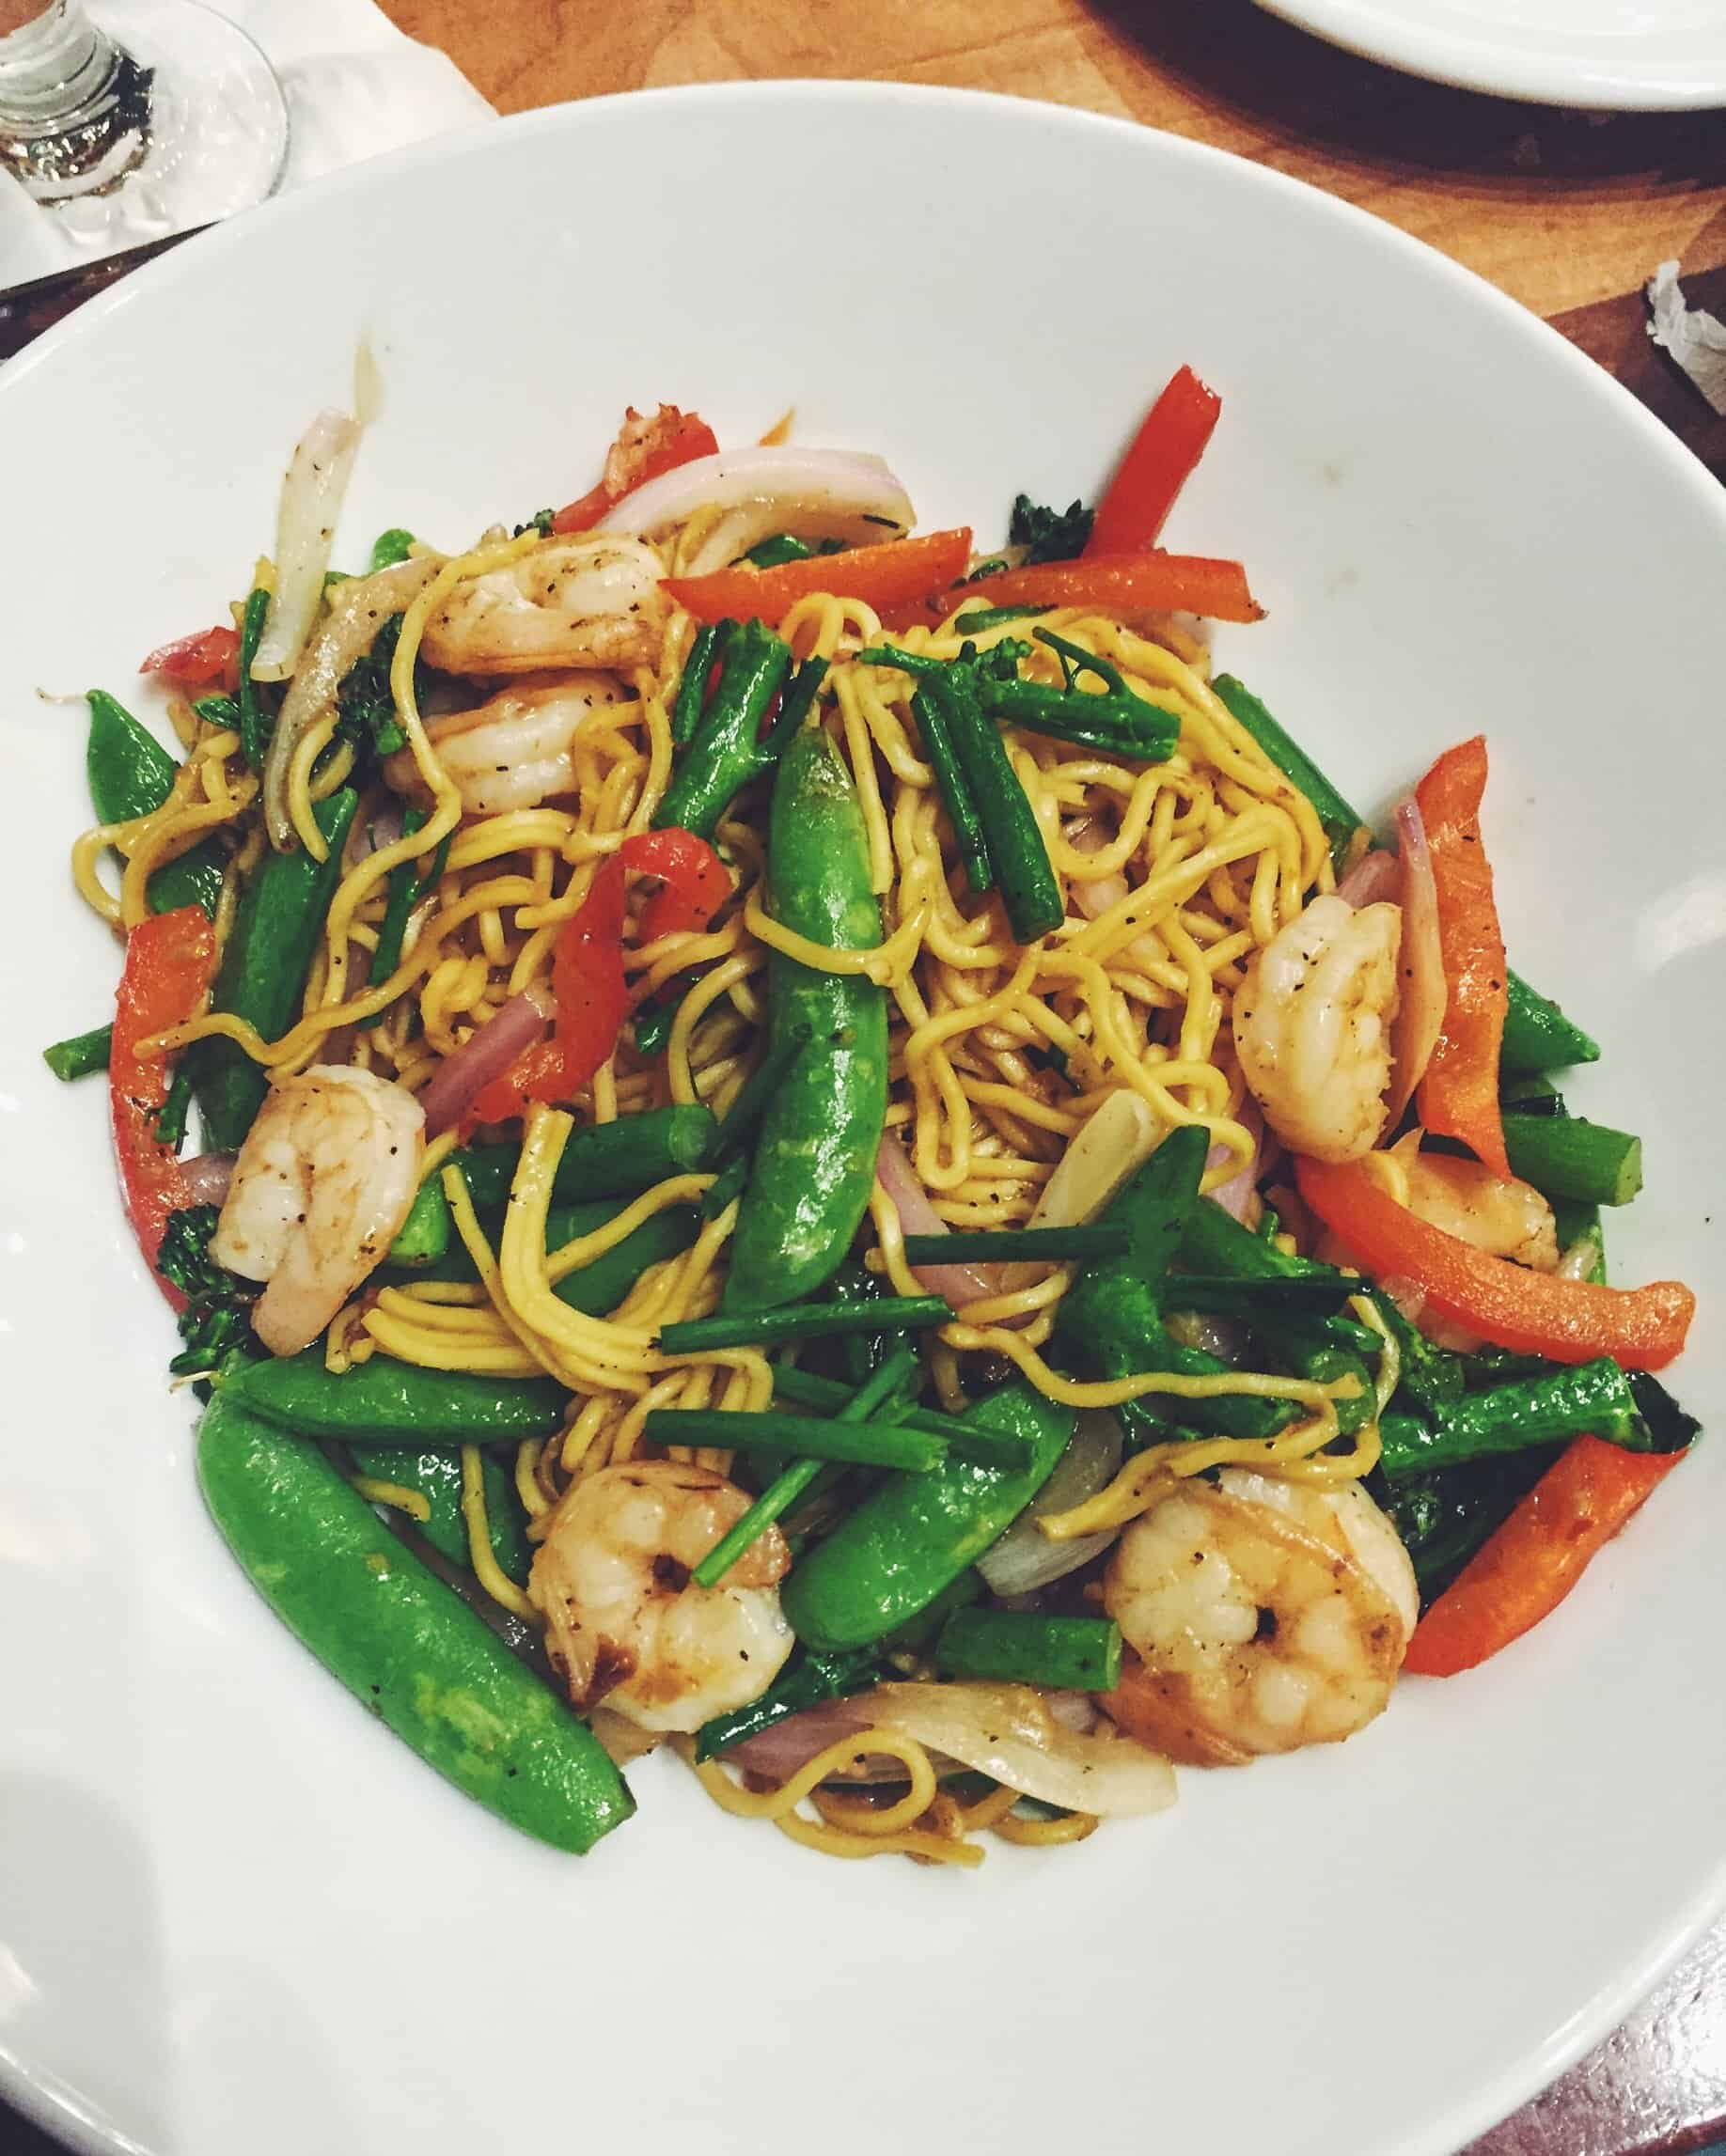 Pan Asian Noodles from Kona Cafe